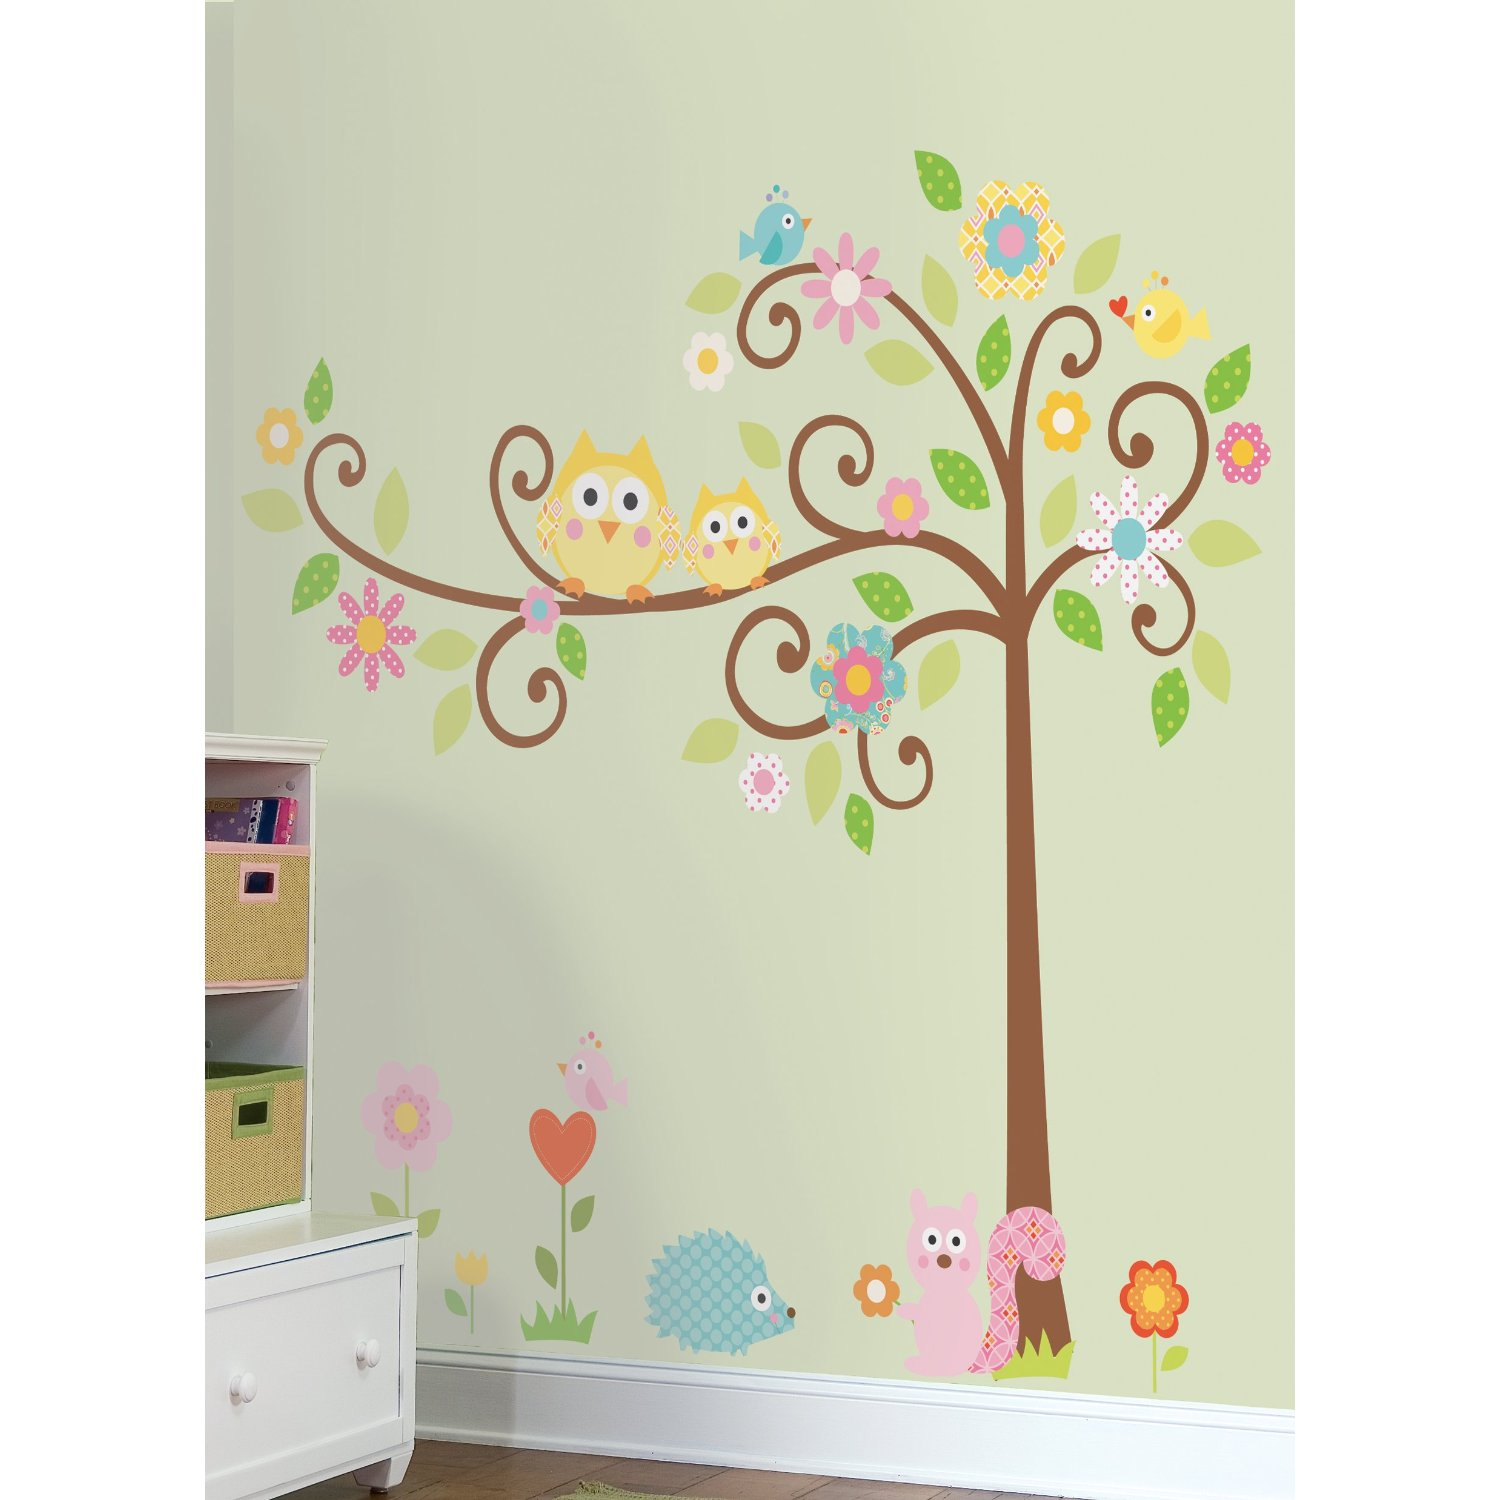 Nursery room ideas nursery wall decals for Room decor wall art